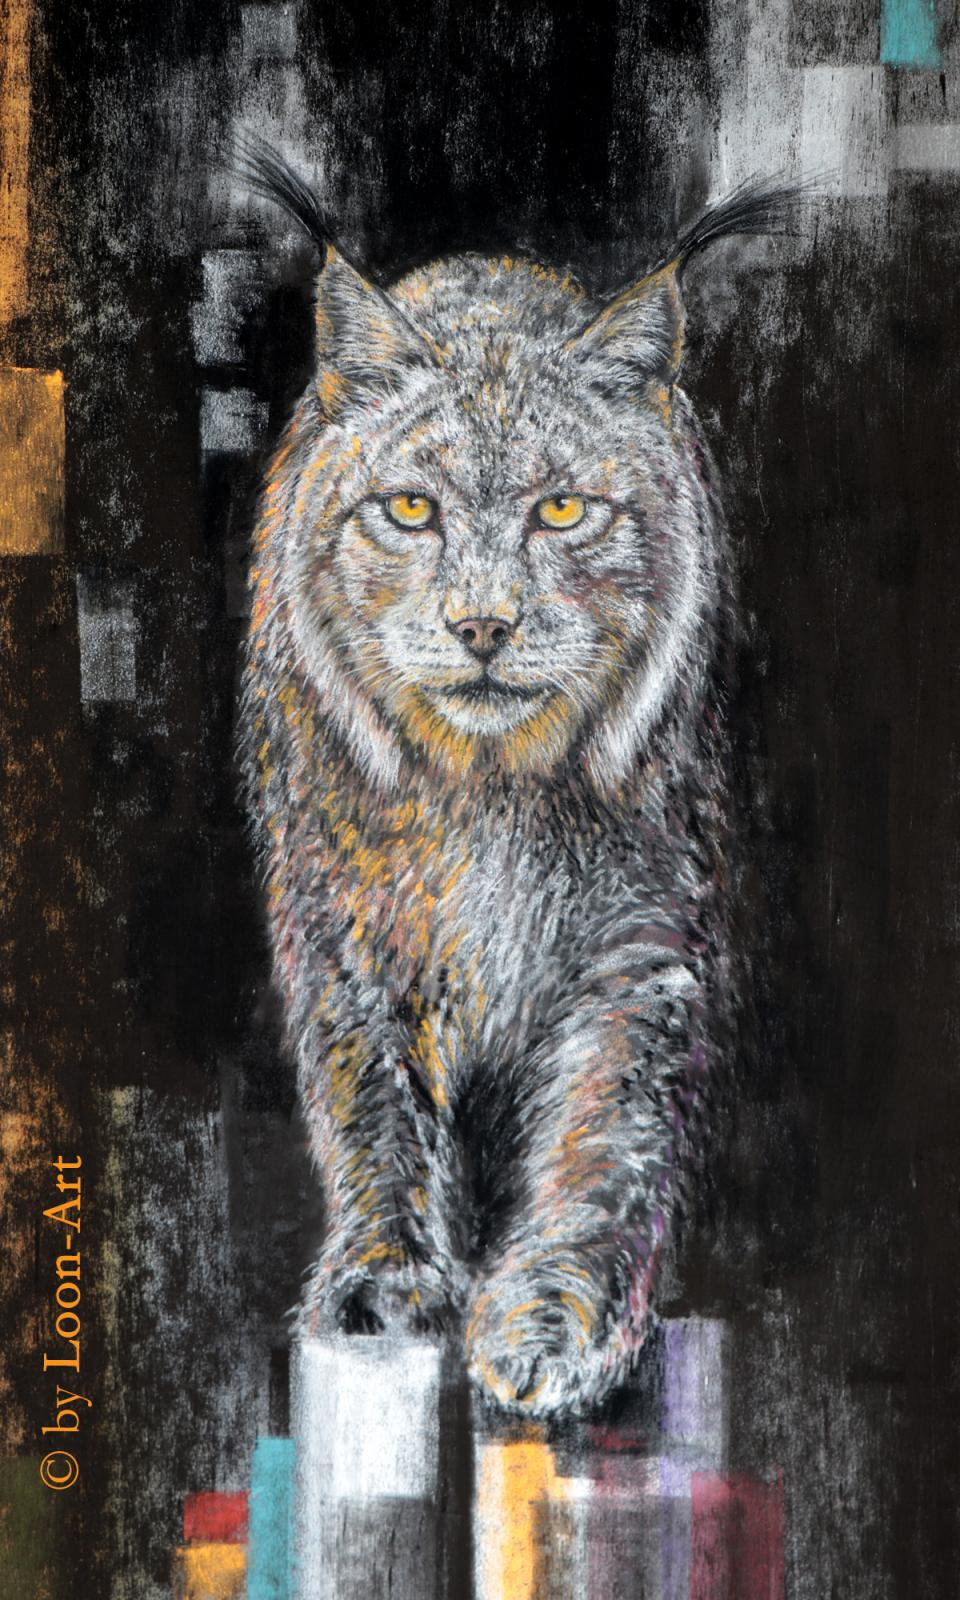 Add Artwork | Wallhanging by Norbert Gramer | Artists for Conservation